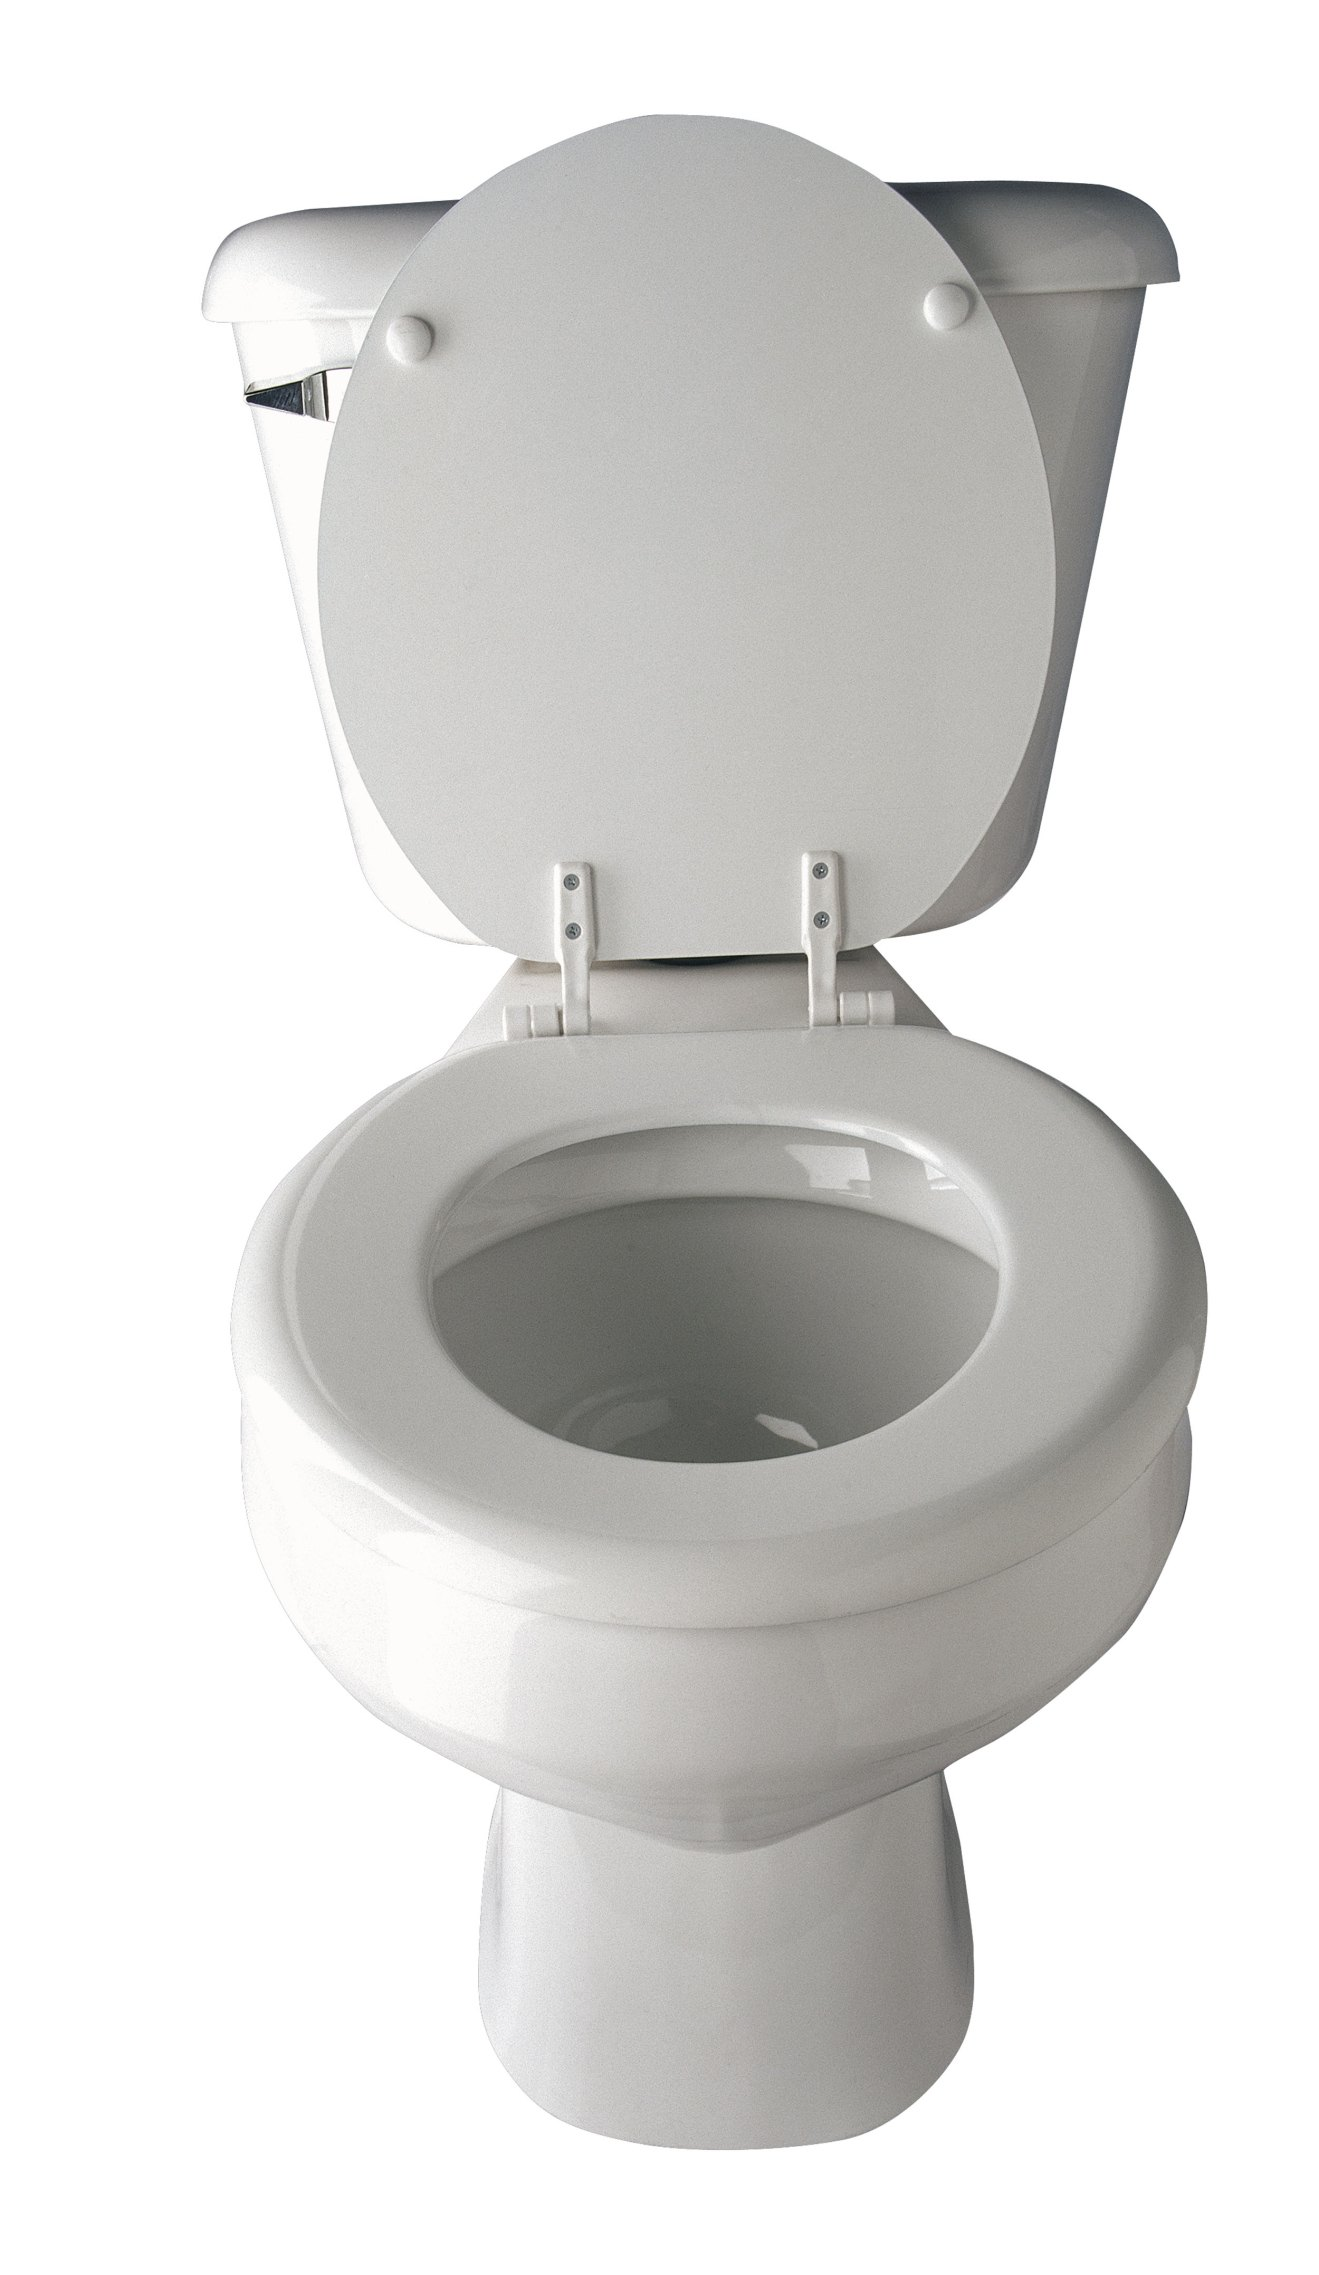 Toilet Bowl Home Depot